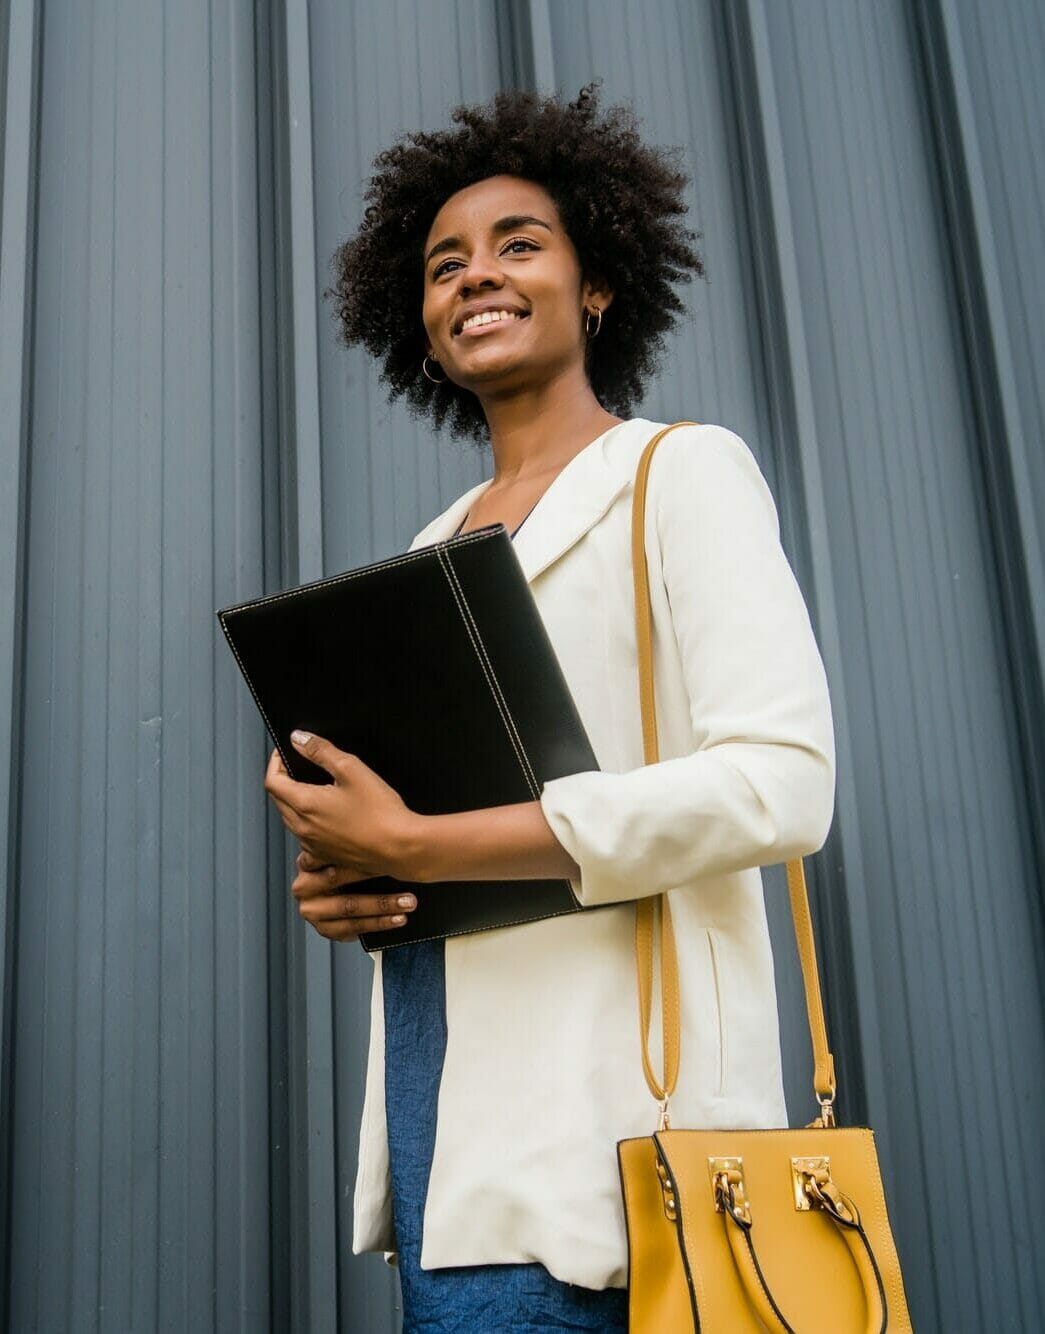 Afro businesswoman holding clipboard outdoors at the street.